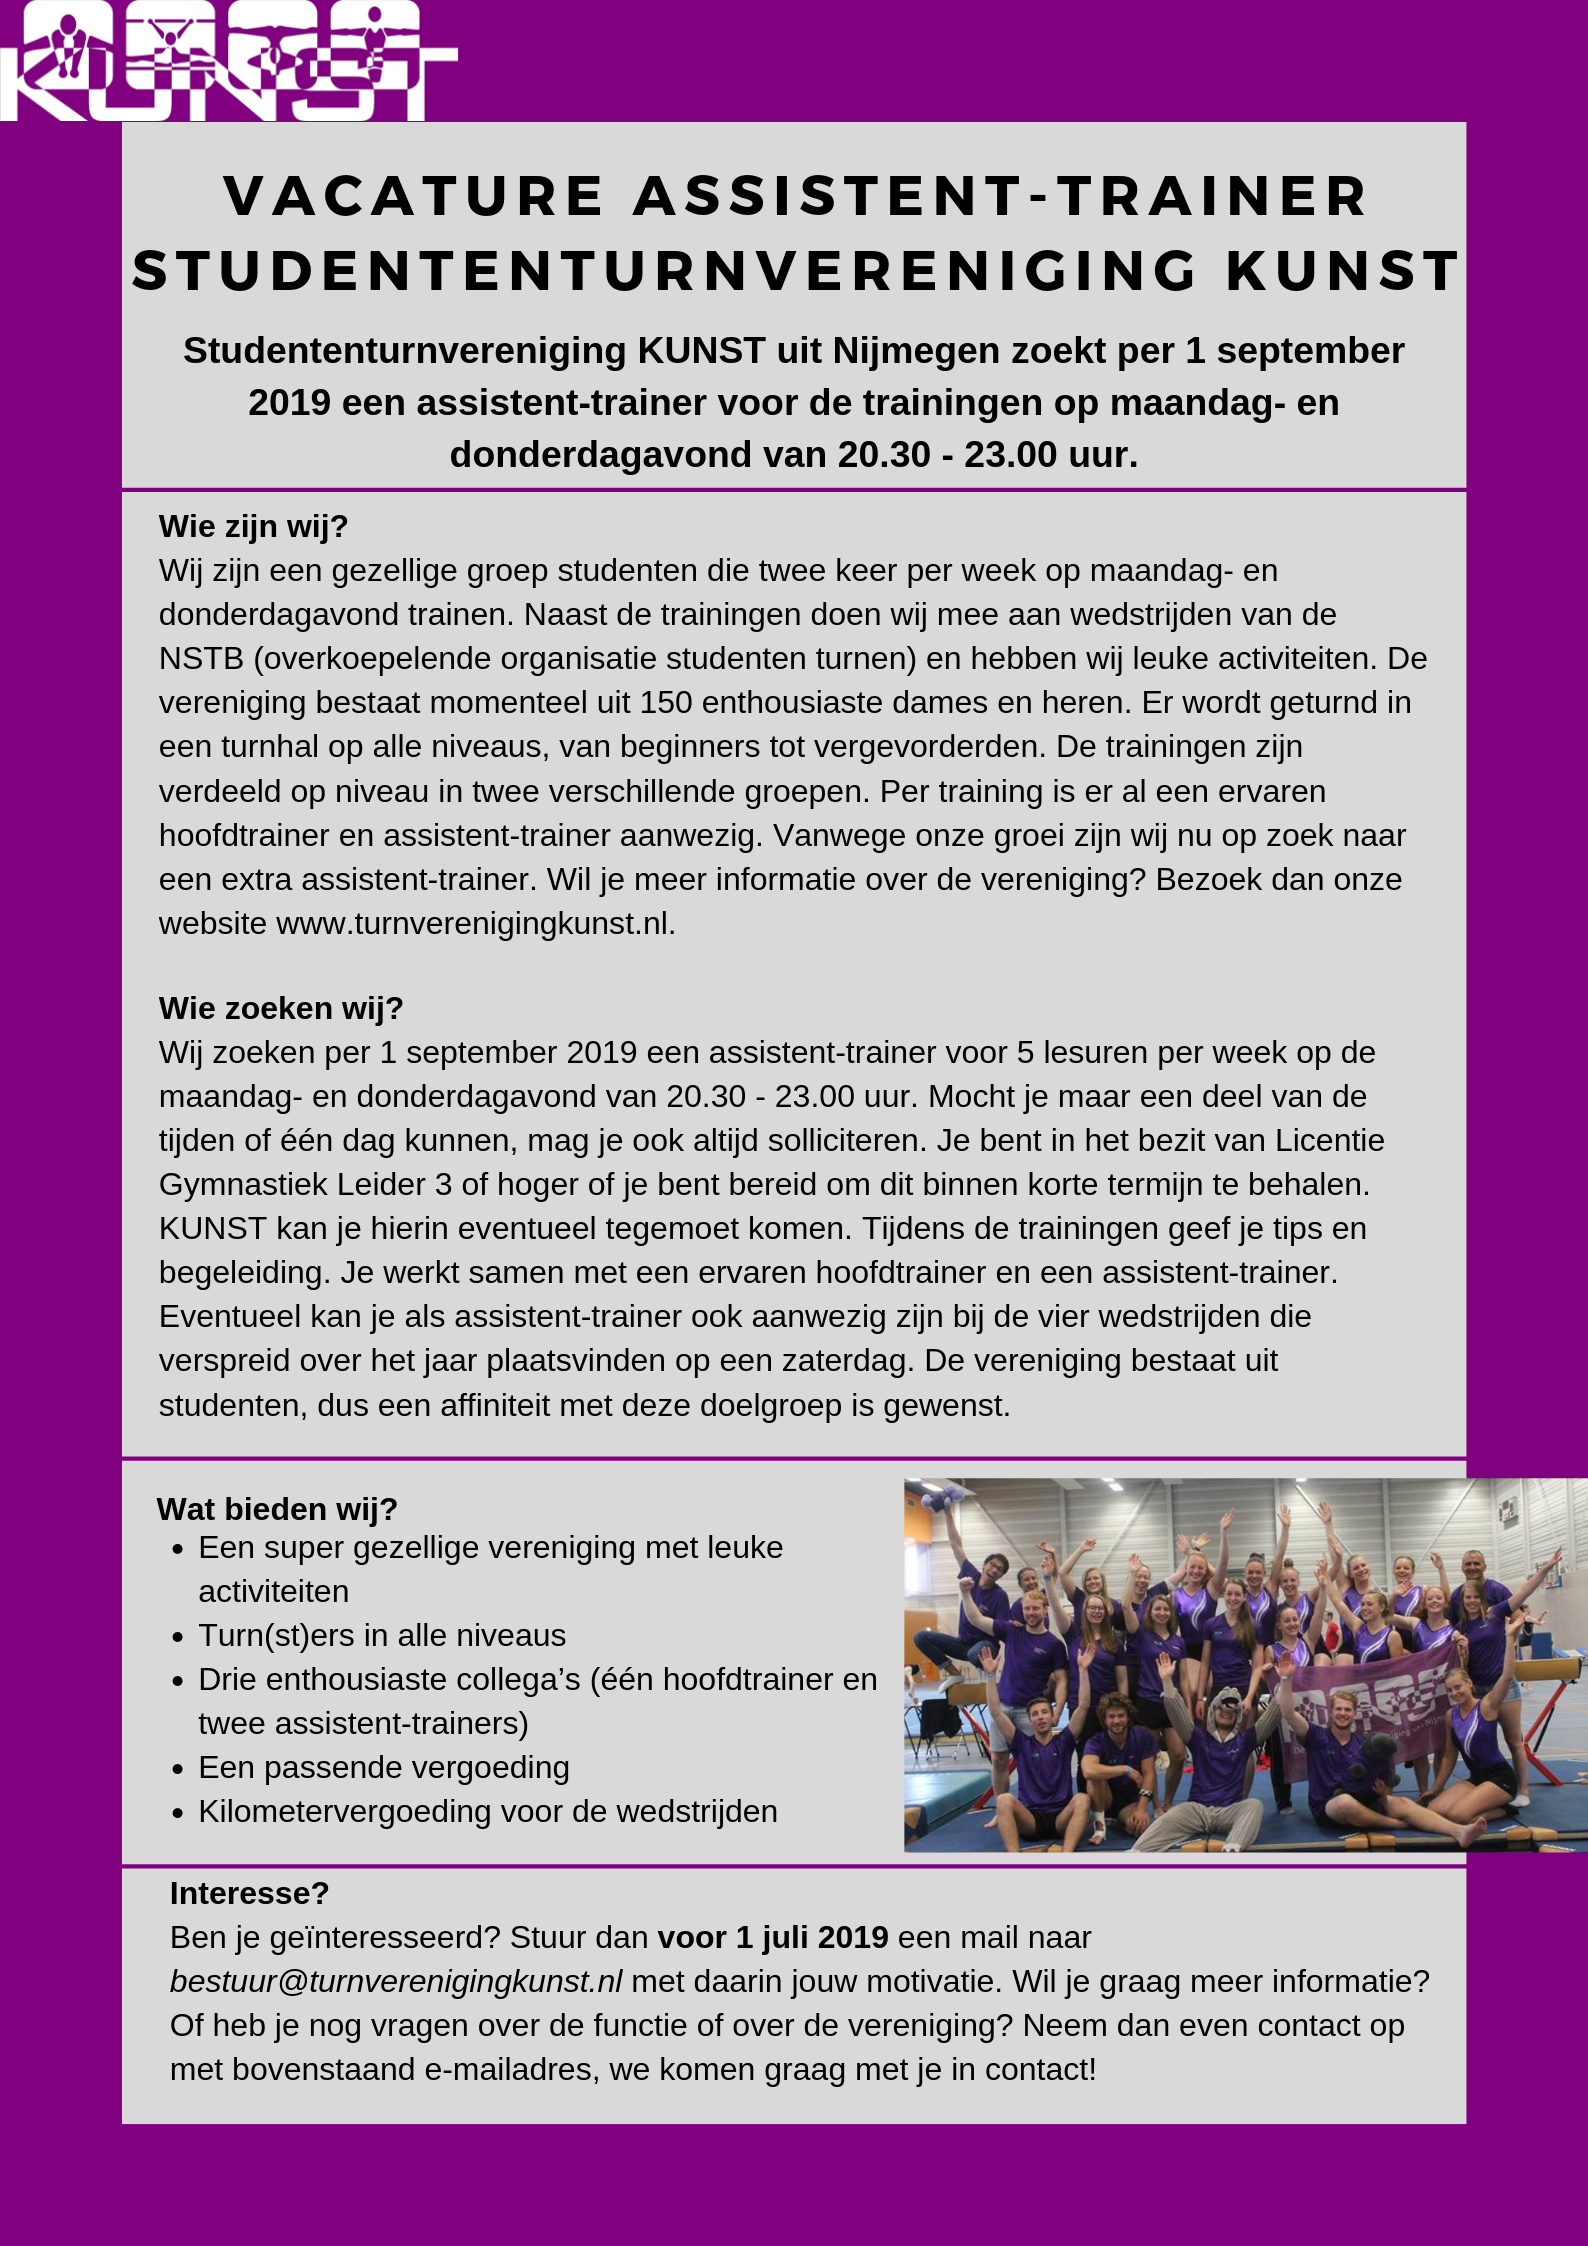 Vacature assistent-trainer KUNST